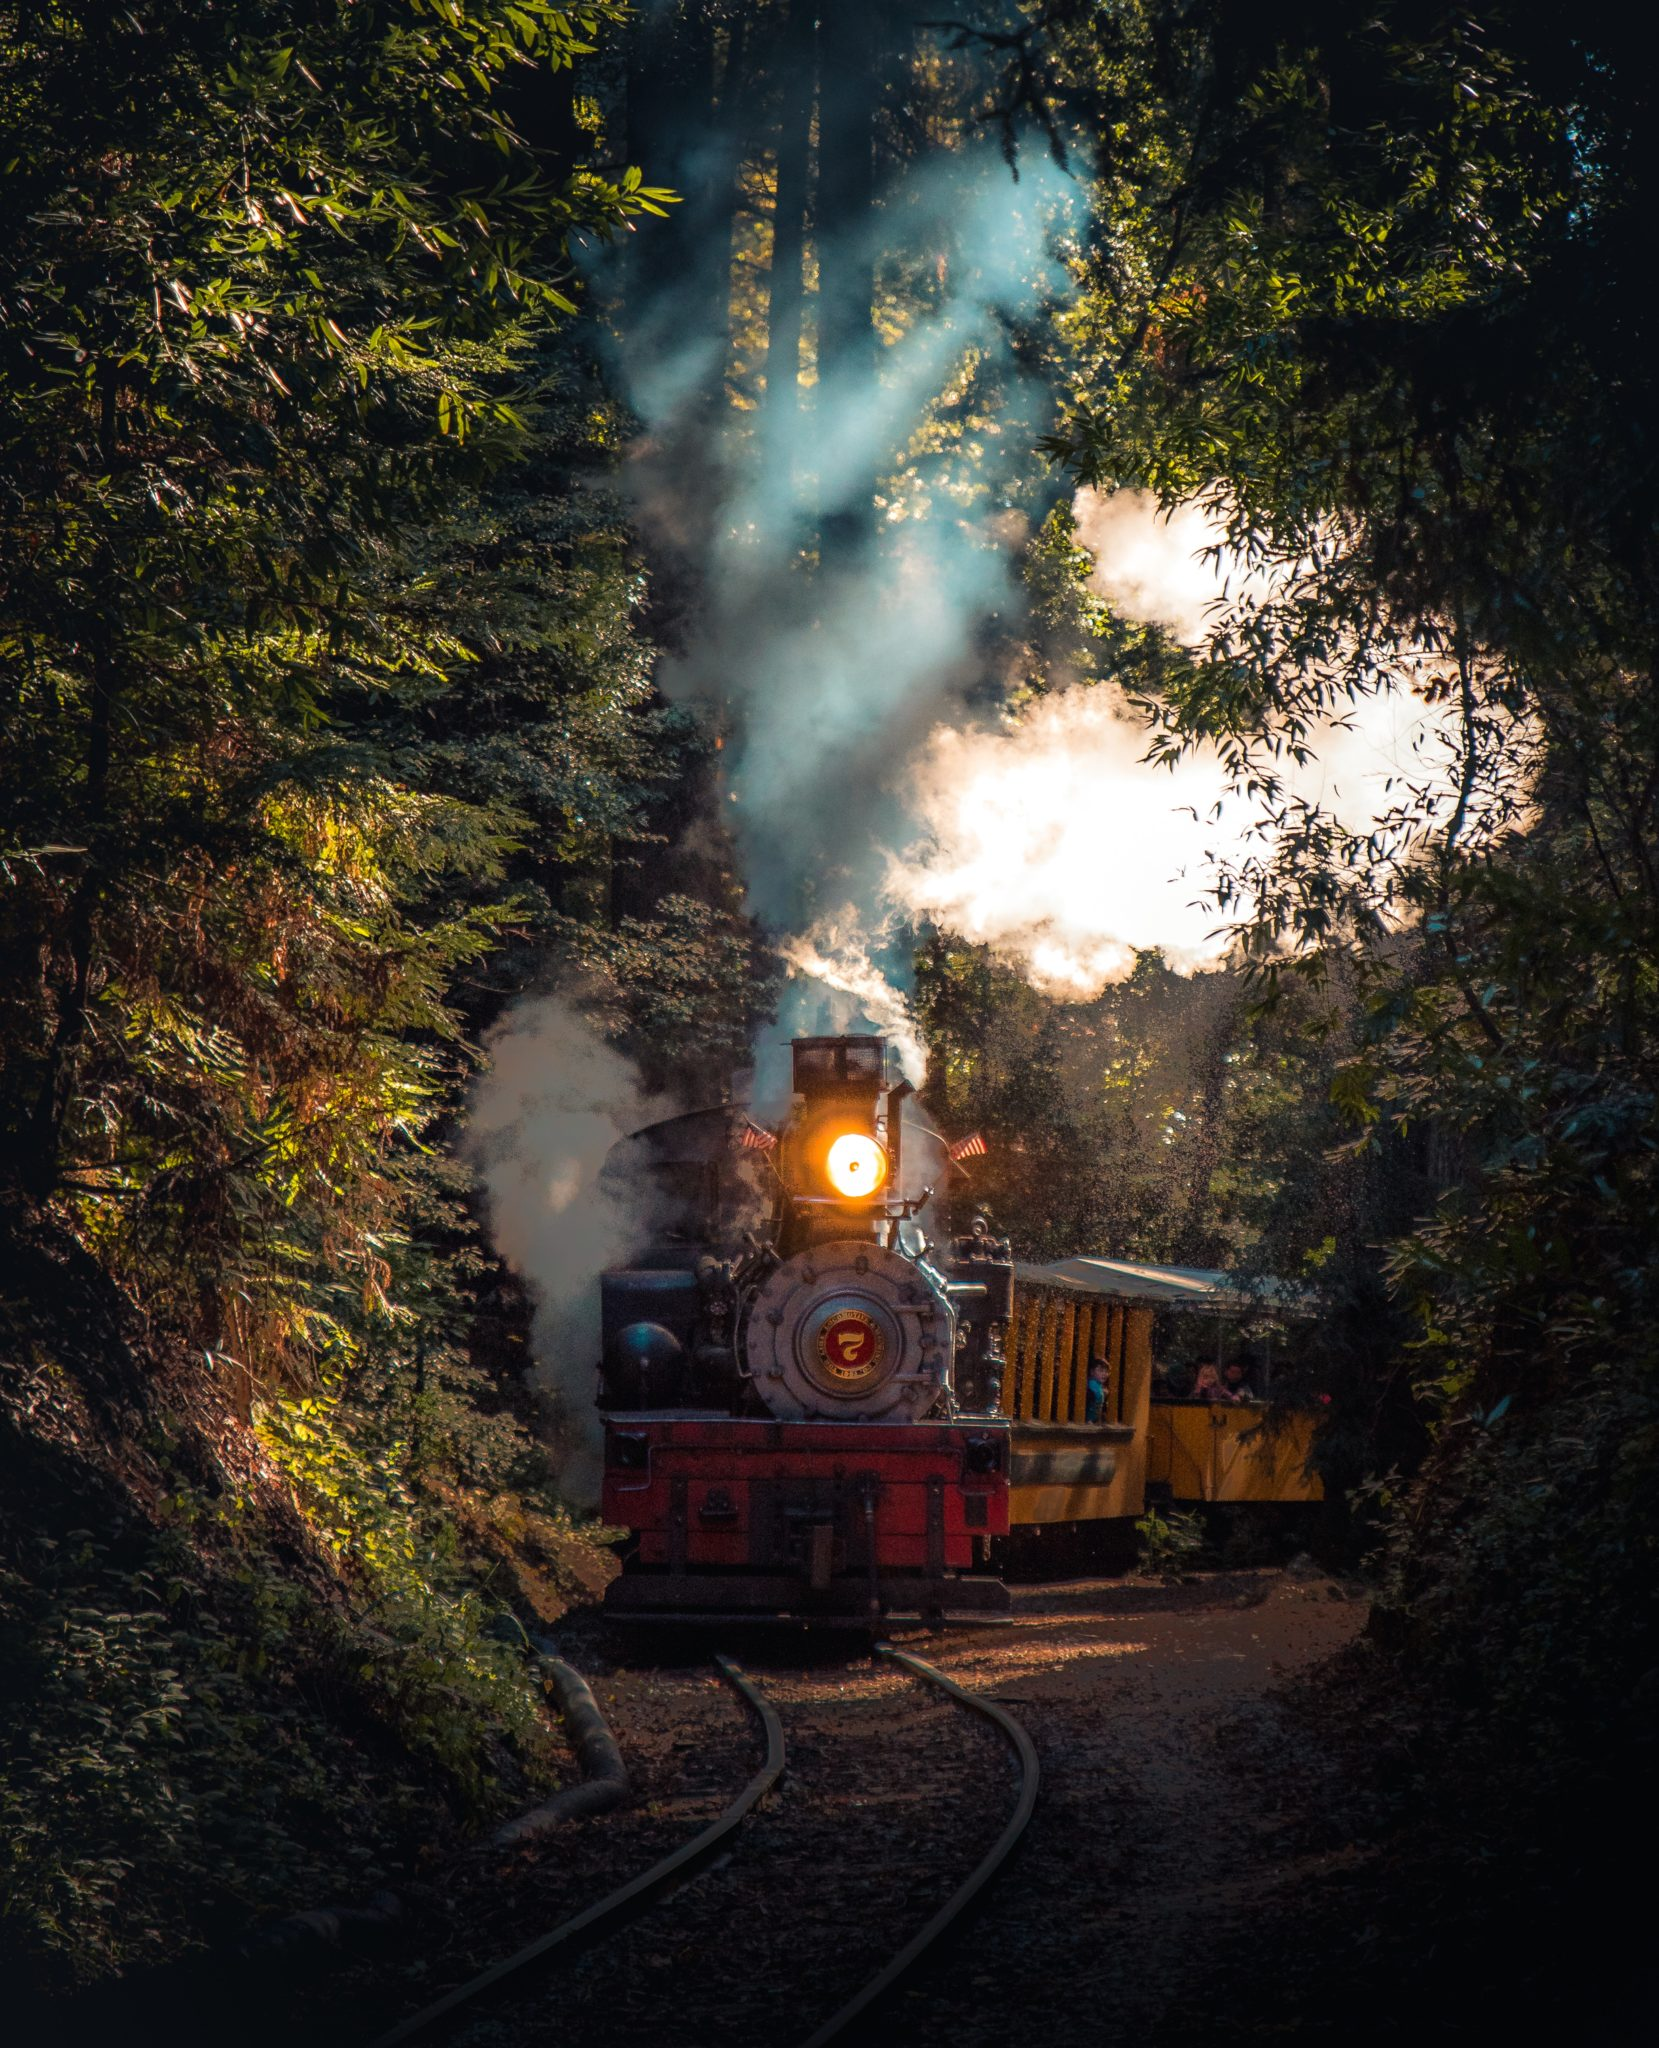 Harry Potter Trains a great Steam Journey on the Hogwarts Express